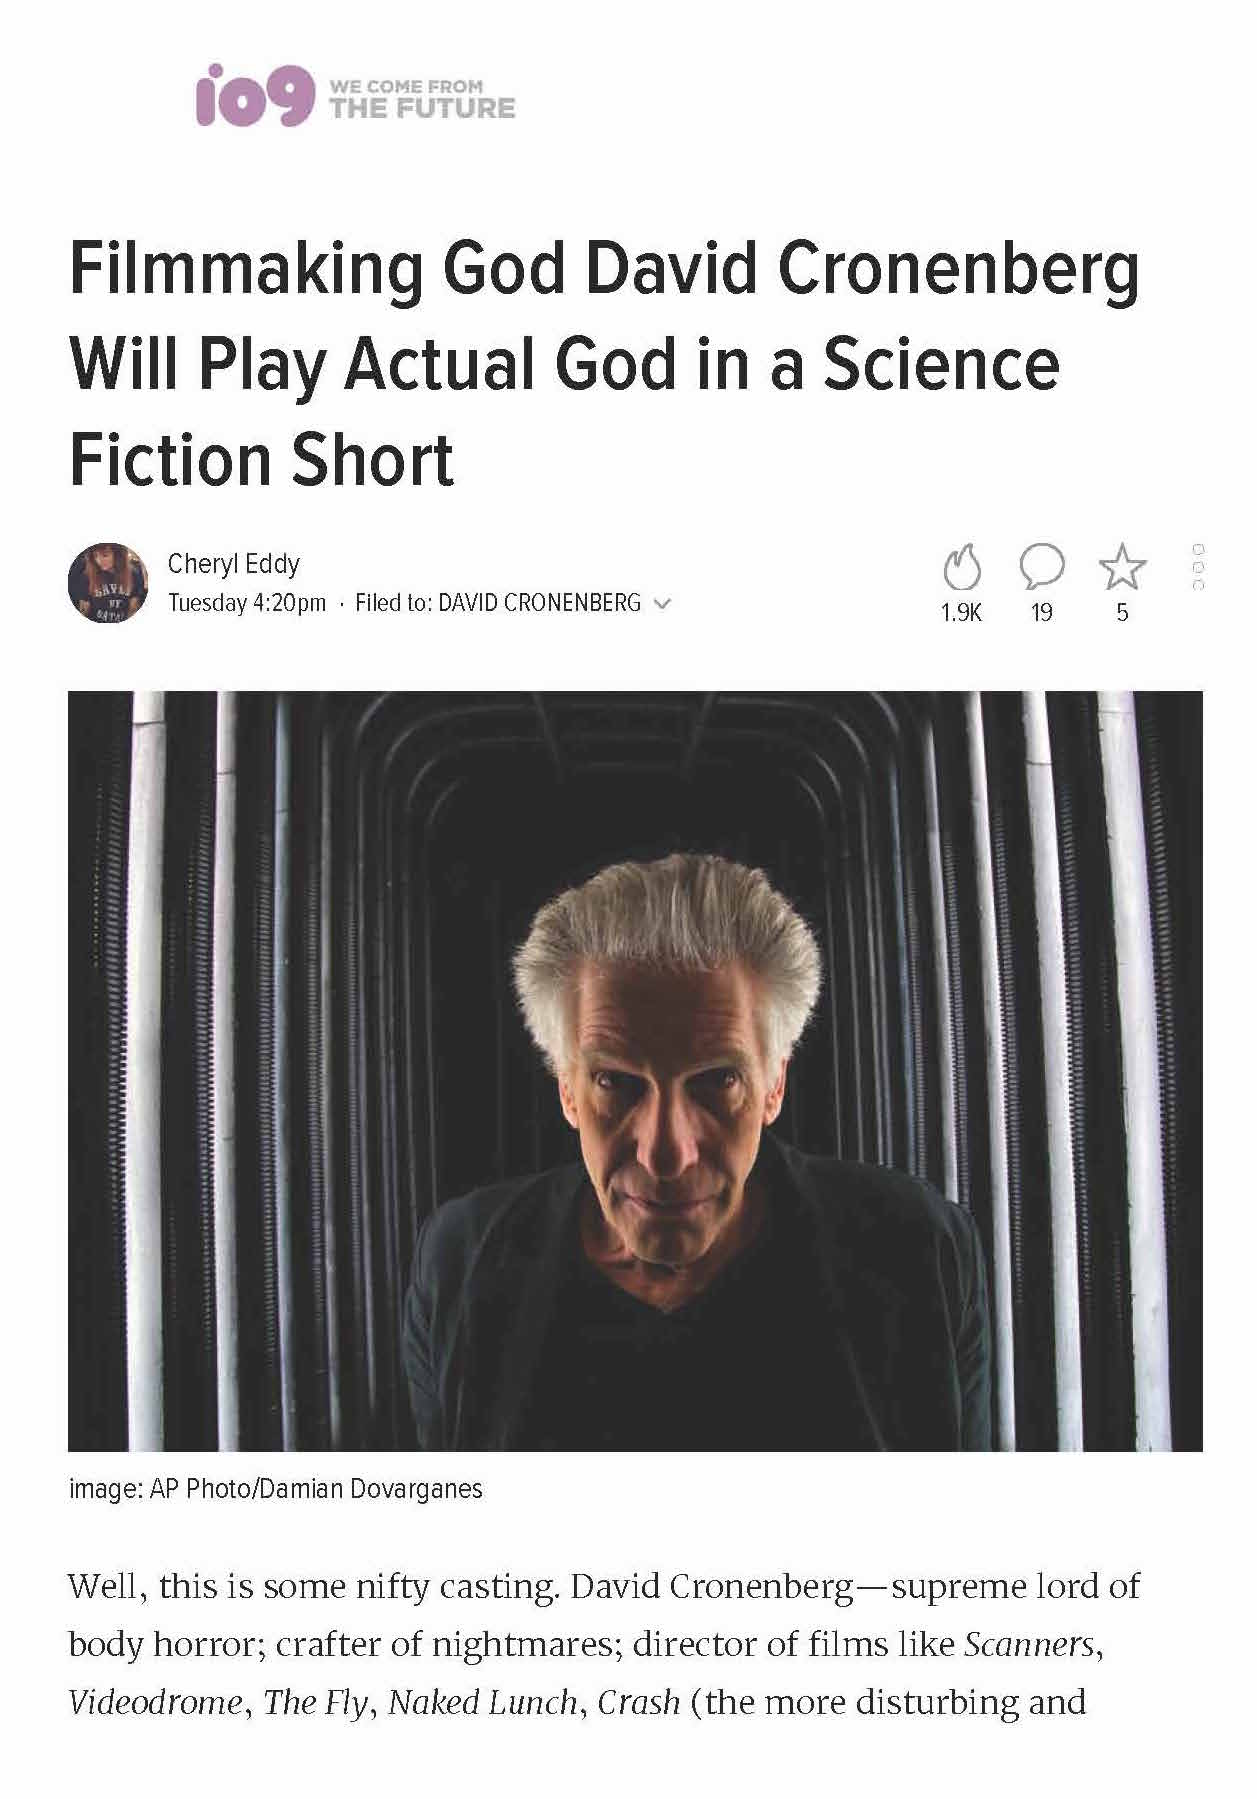 Filmmaking God David Cronenberg Will Play Actual God in a Science Fiction Short_Page_1.jpg